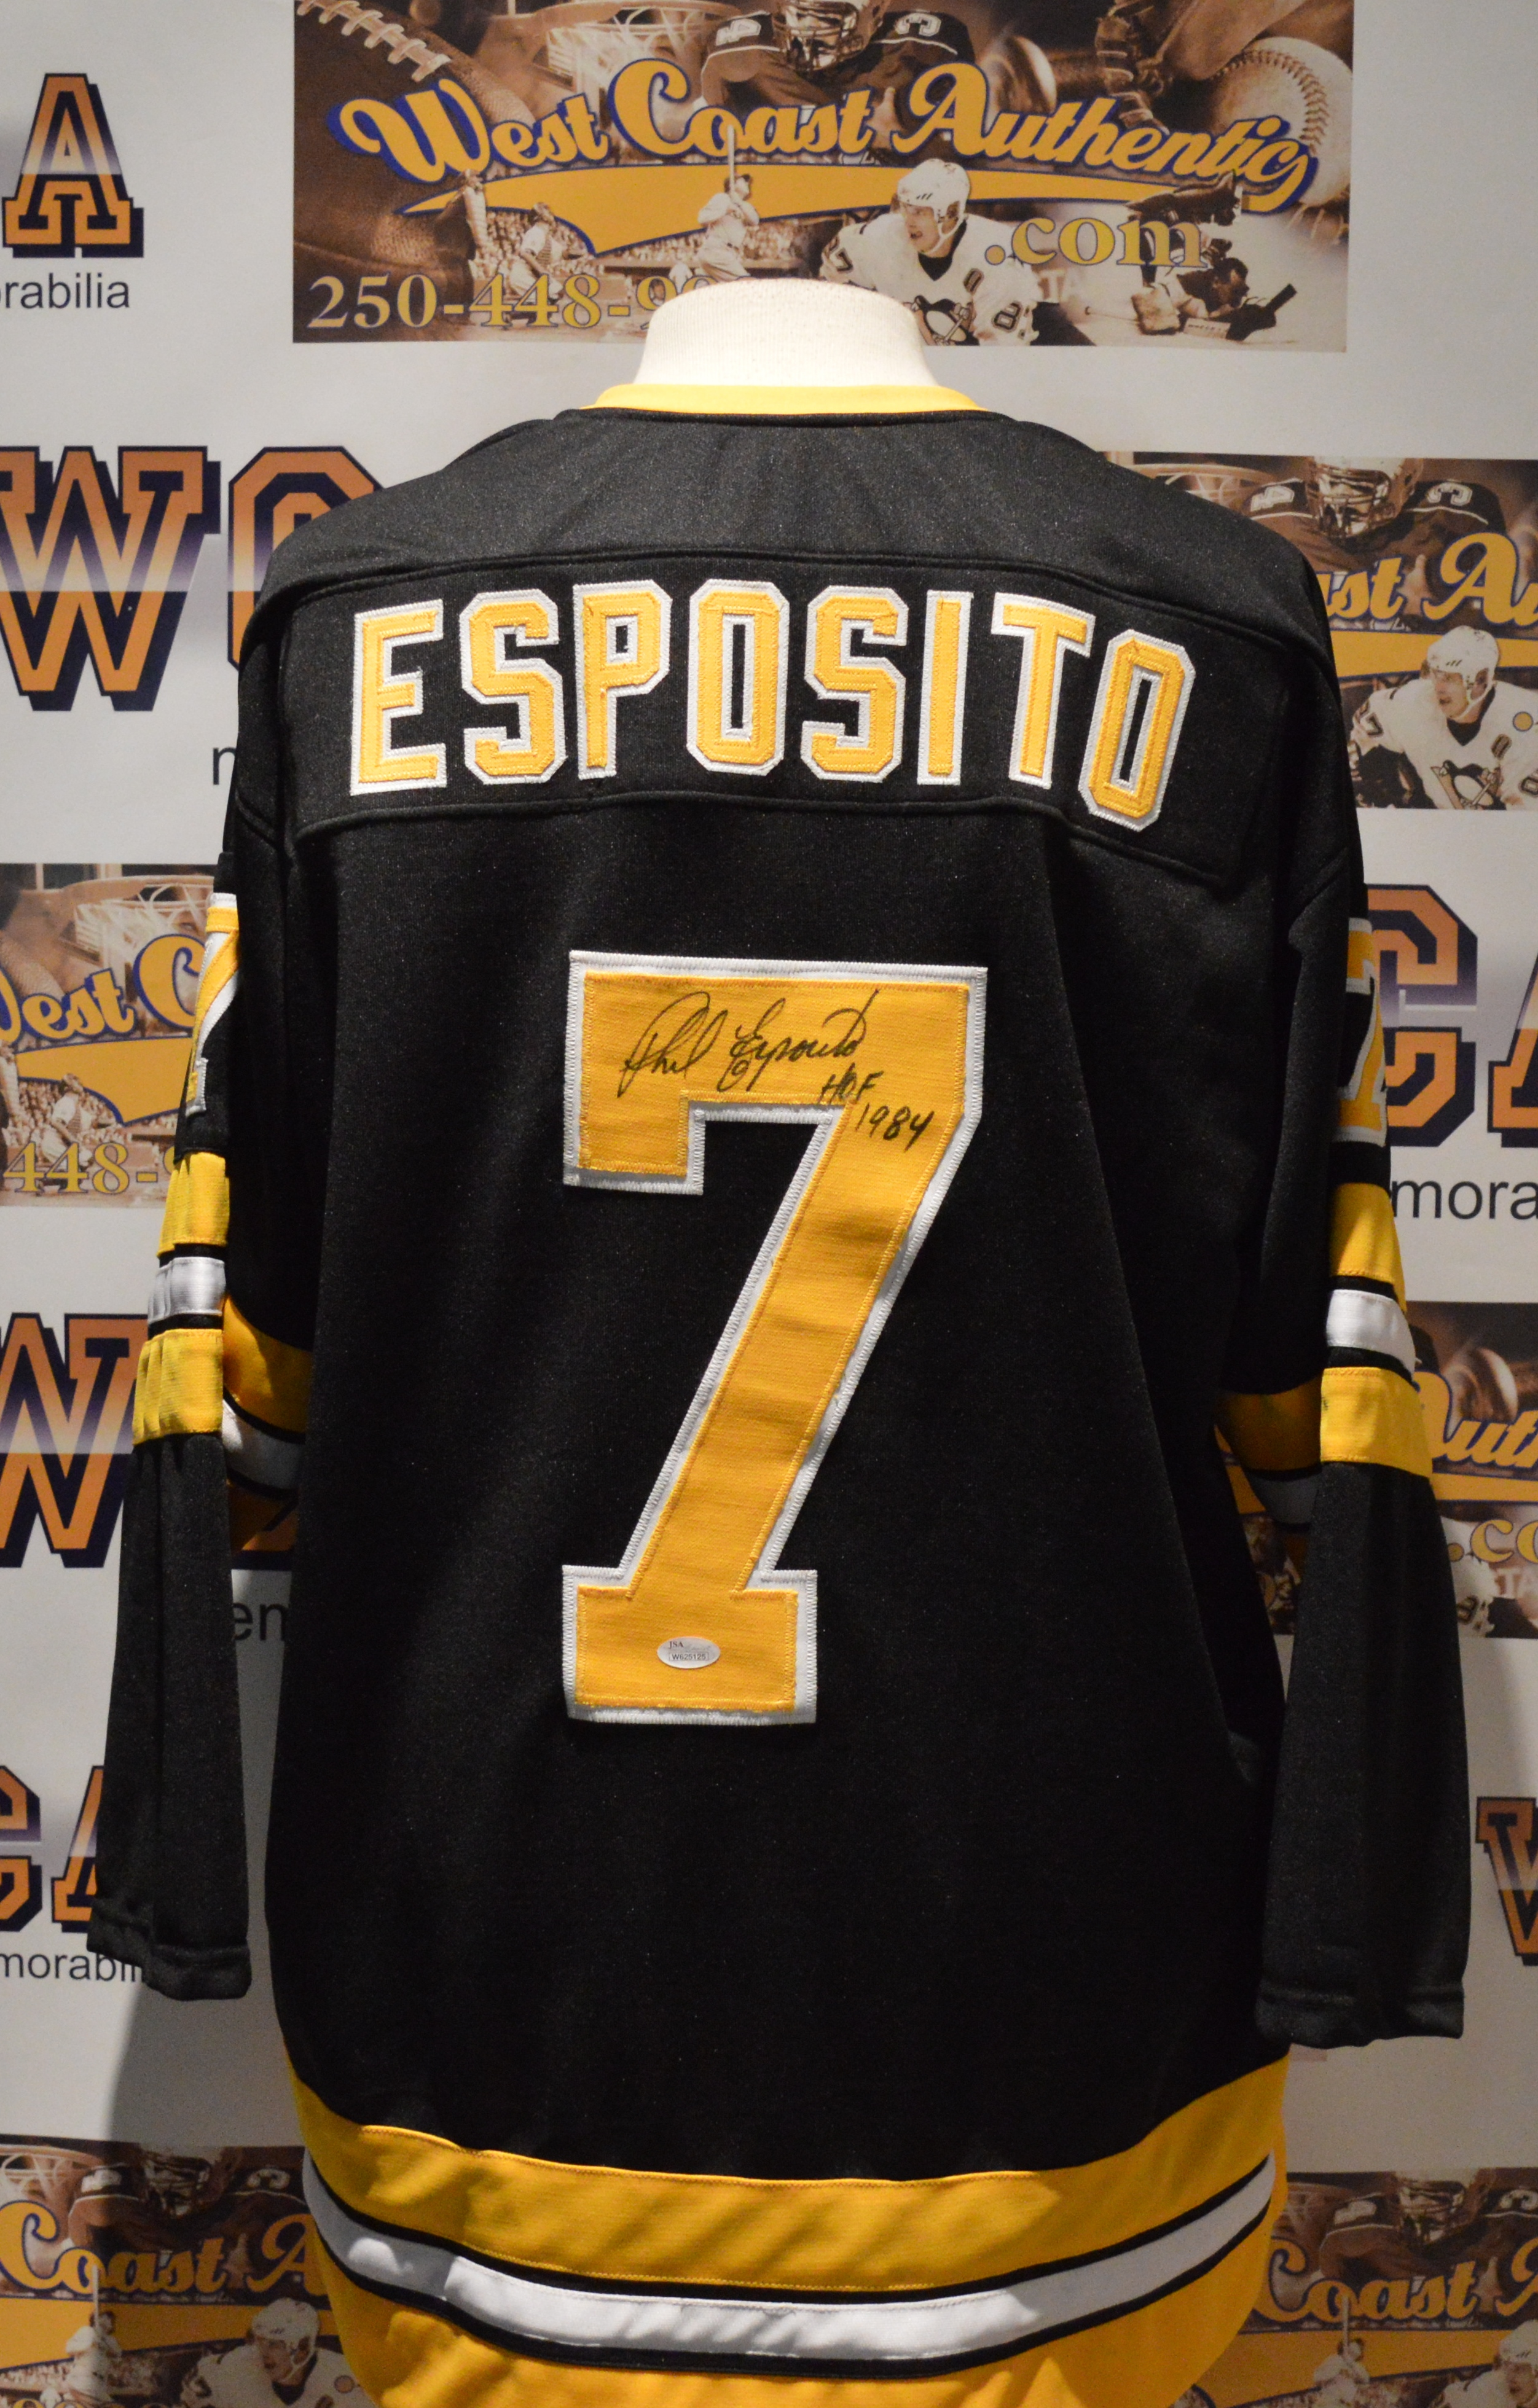 ... Phil Esposito Autographed Boston Bruins Jersey.  west coast authentic nhl bruins phil esposito autographed jersey2 00766245b32